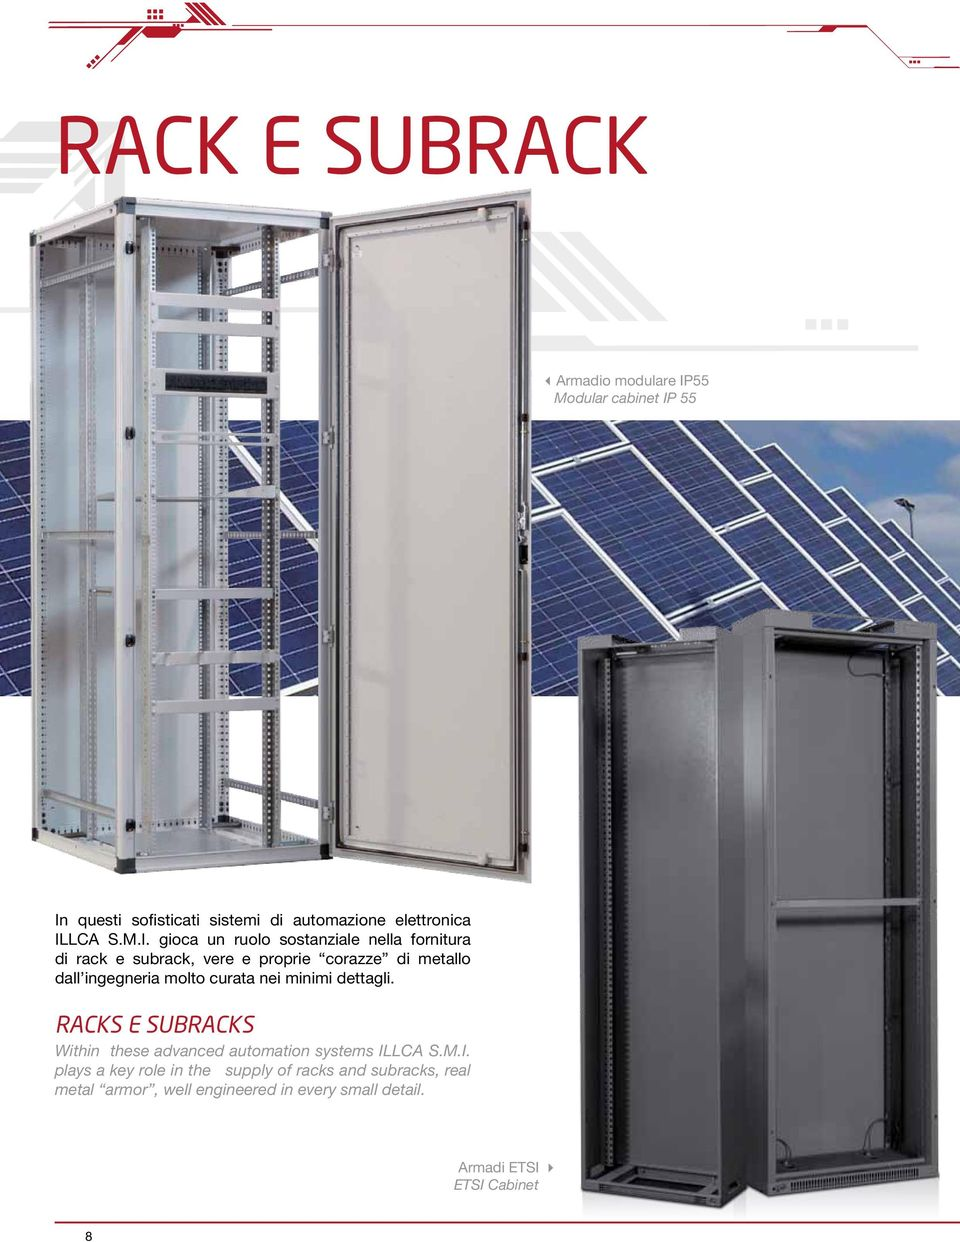 ingegneria molto curata nei minimi dettagli. RACKs E SUBRACKs Within these advanced automation systems IL